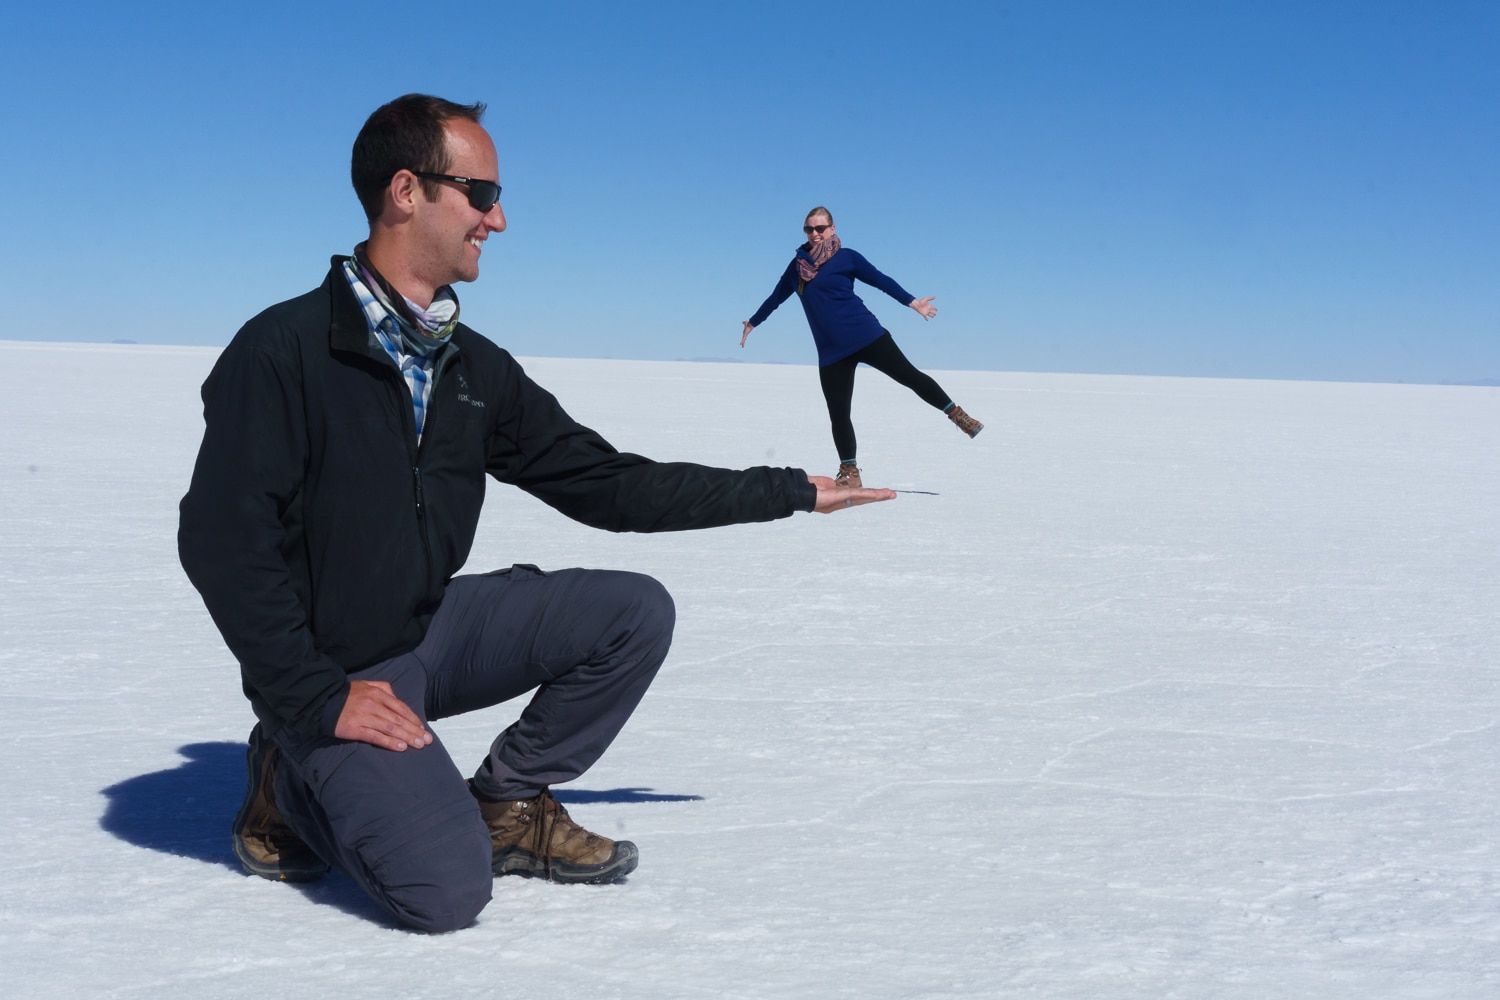 Goofing around at Salar de Uyuni, Bolivia